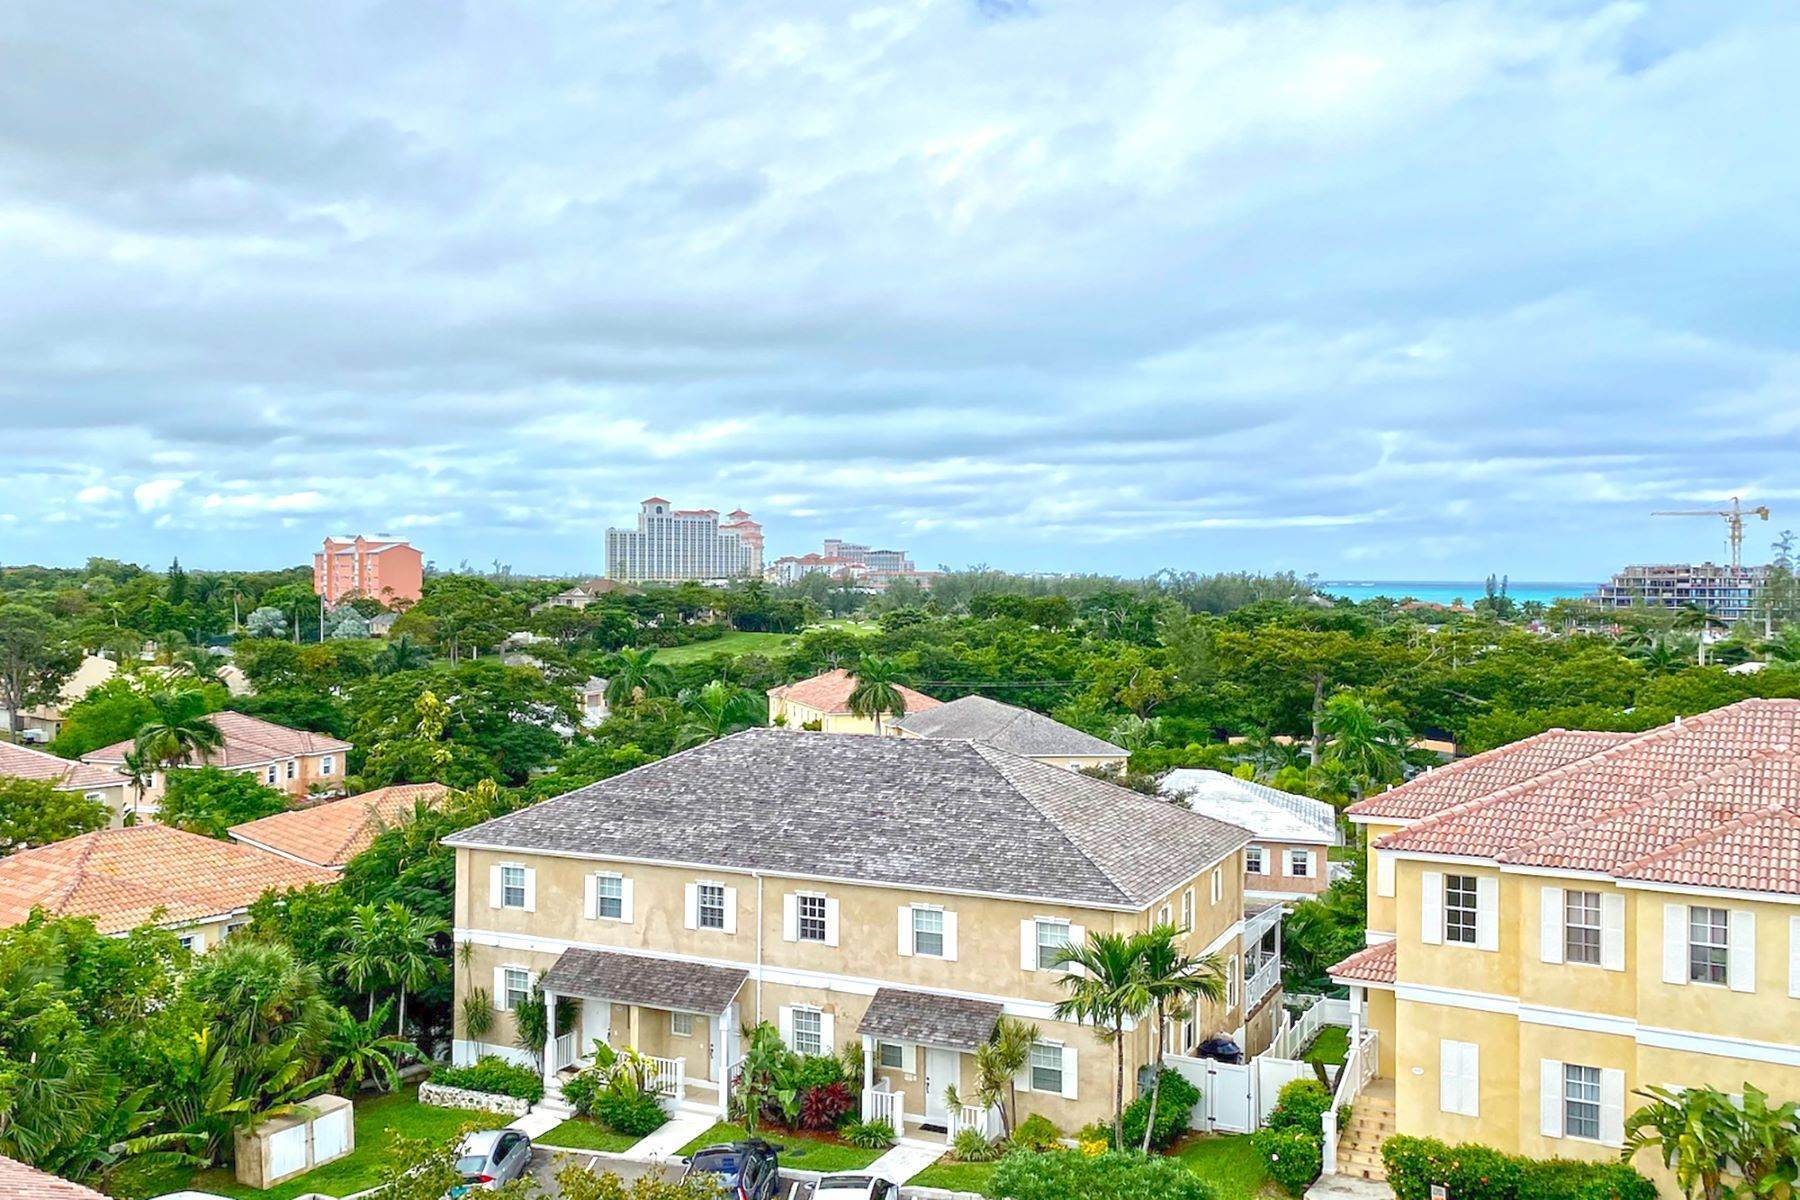 townhouses for Sale at 109 Balmoral Townhouse Balmoral, Prospect Ridge, Nassau And Paradise Island Bahamas